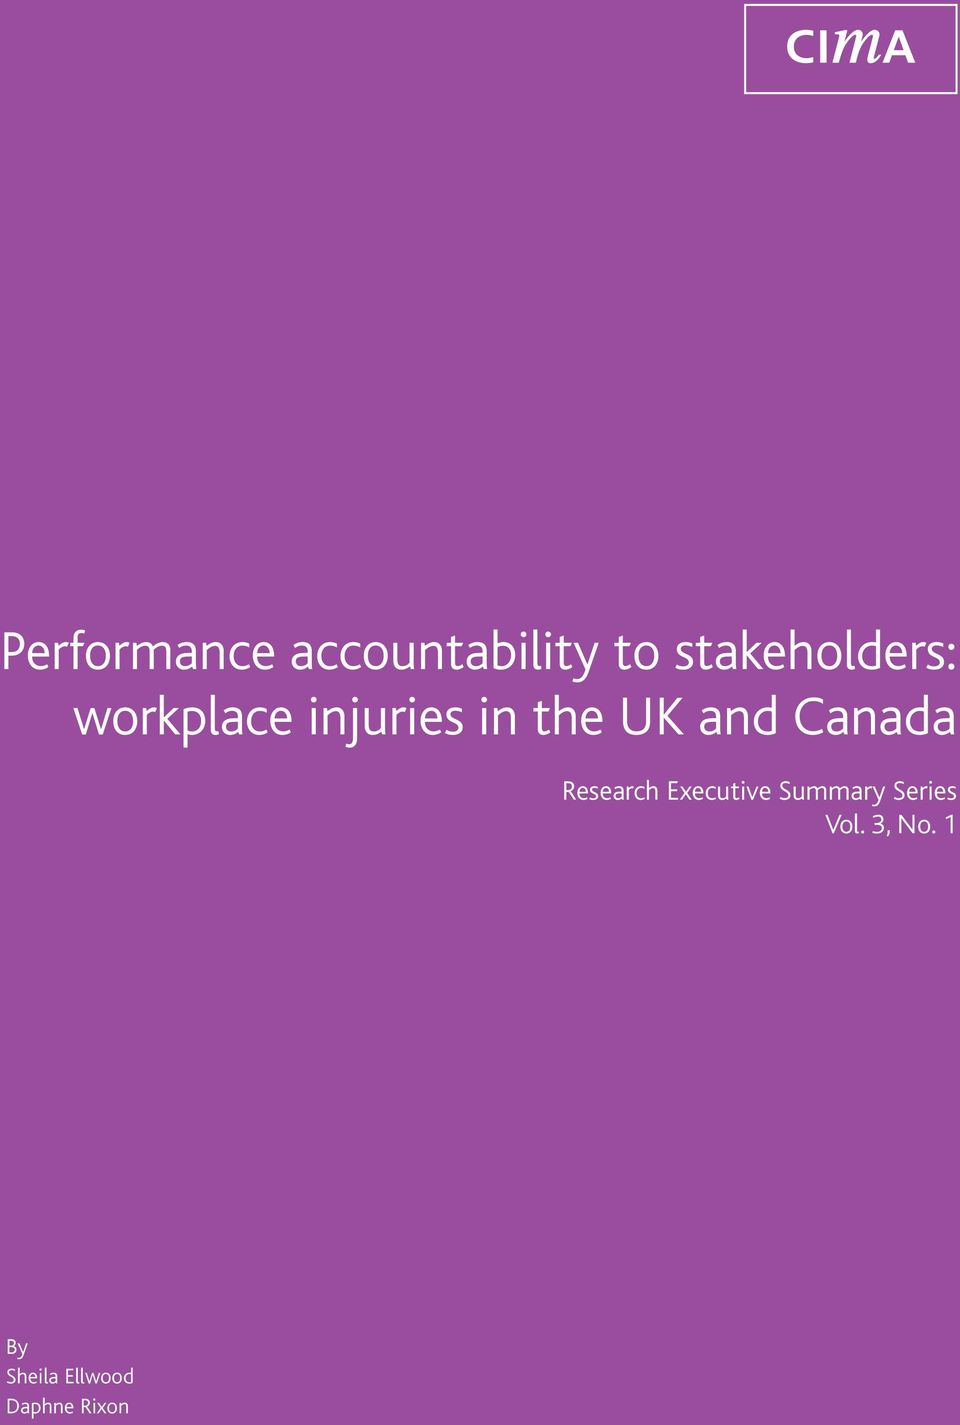 UK and Canada Research Executive Summary